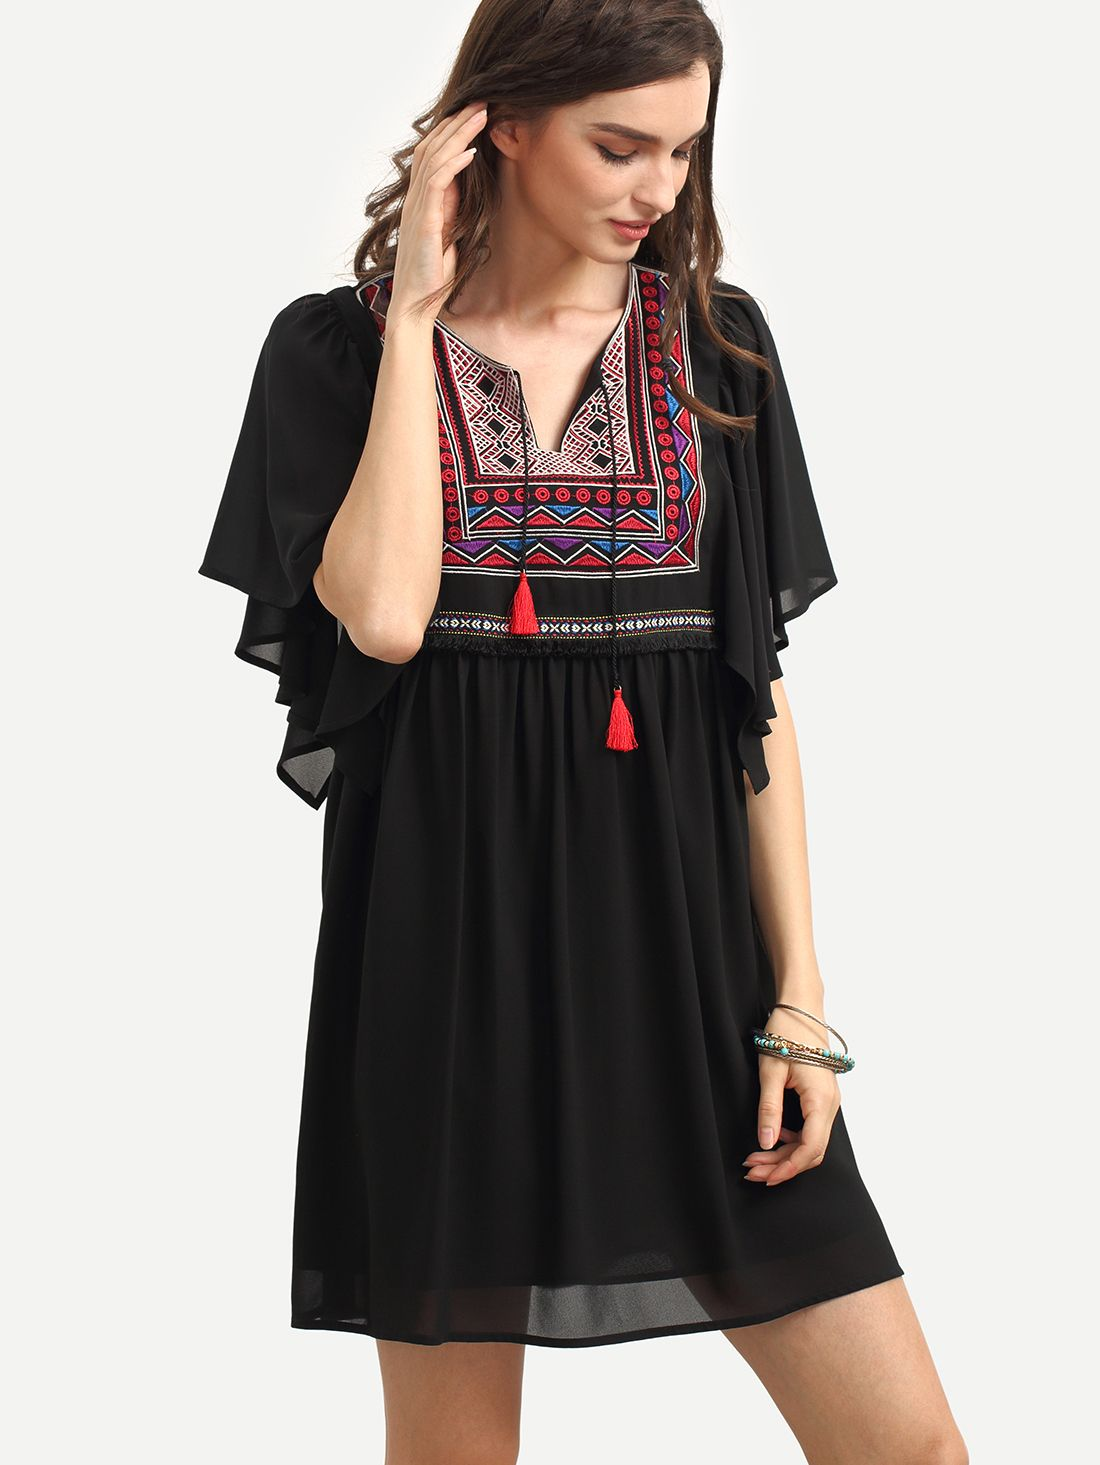 Buy it now. Black Vintage Embroidered Shift Dress. Black Vintage Polyester V Neck Short Sleeve Shift Short Embroidery Embroidery Fabric has no stretch Summer Tunic Dresses. , vestidoinformal, casual, camiseta, playeros, informales, túnica, estilocamiseta, camisola, vestidodealgodón, vestidosdealgodón, verano, informal, playa, playero, capa, capas, vestidobabydoll, camisole, túnica, shift, pleat, pleated, drape, t-shape, daisy, foldedshoulder, summer, loosefit, tunictop, swing, day, offthe...